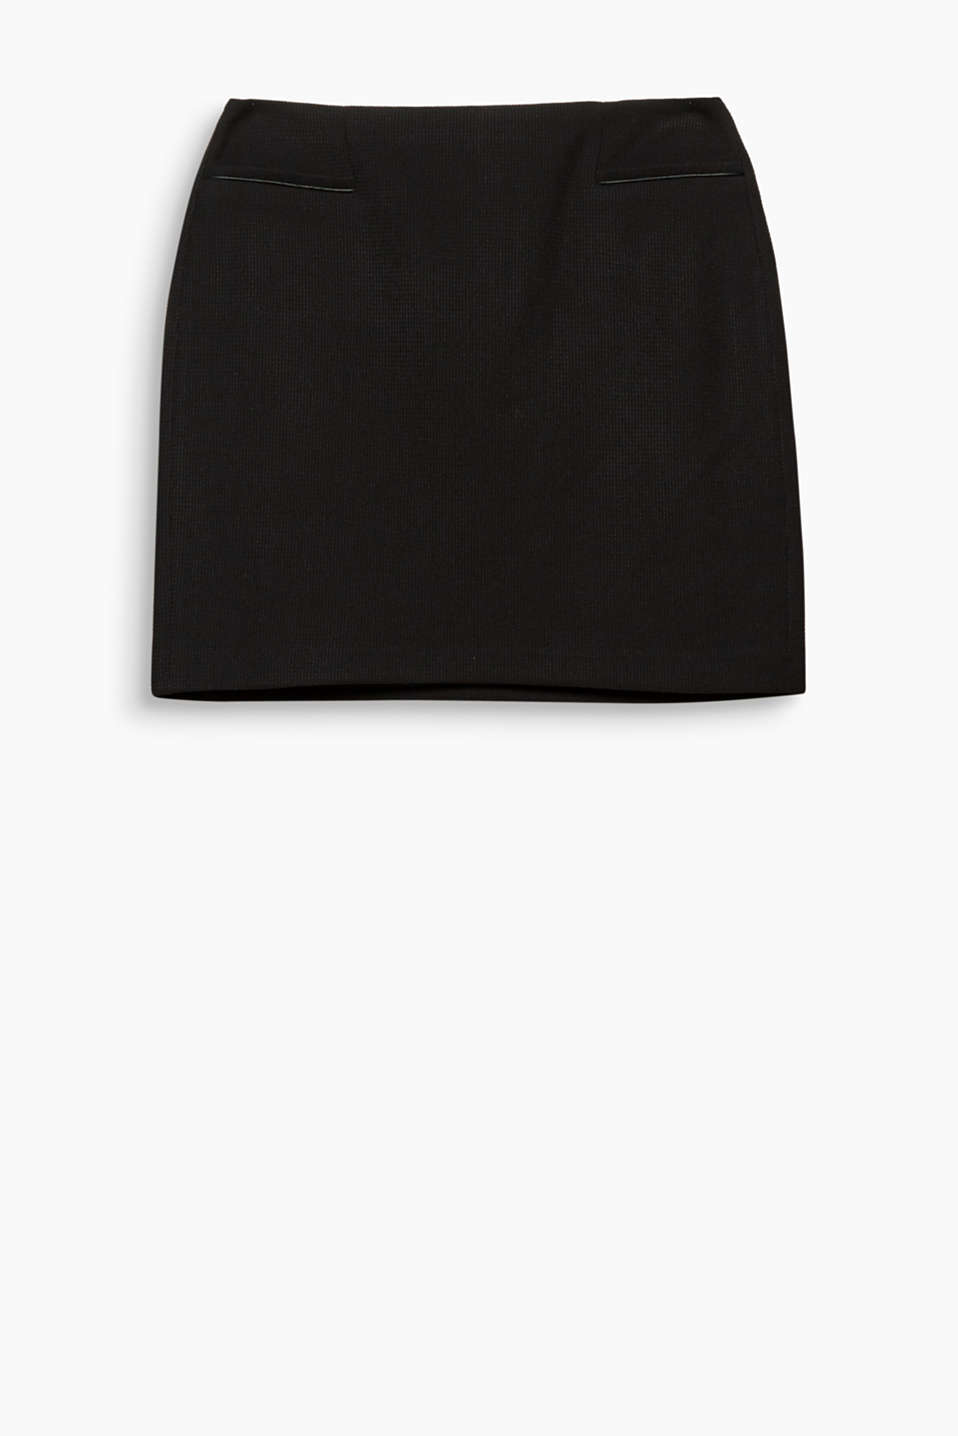 Texture creates movement – and also gives this mini skirt with piped front pockets its fashionable look!